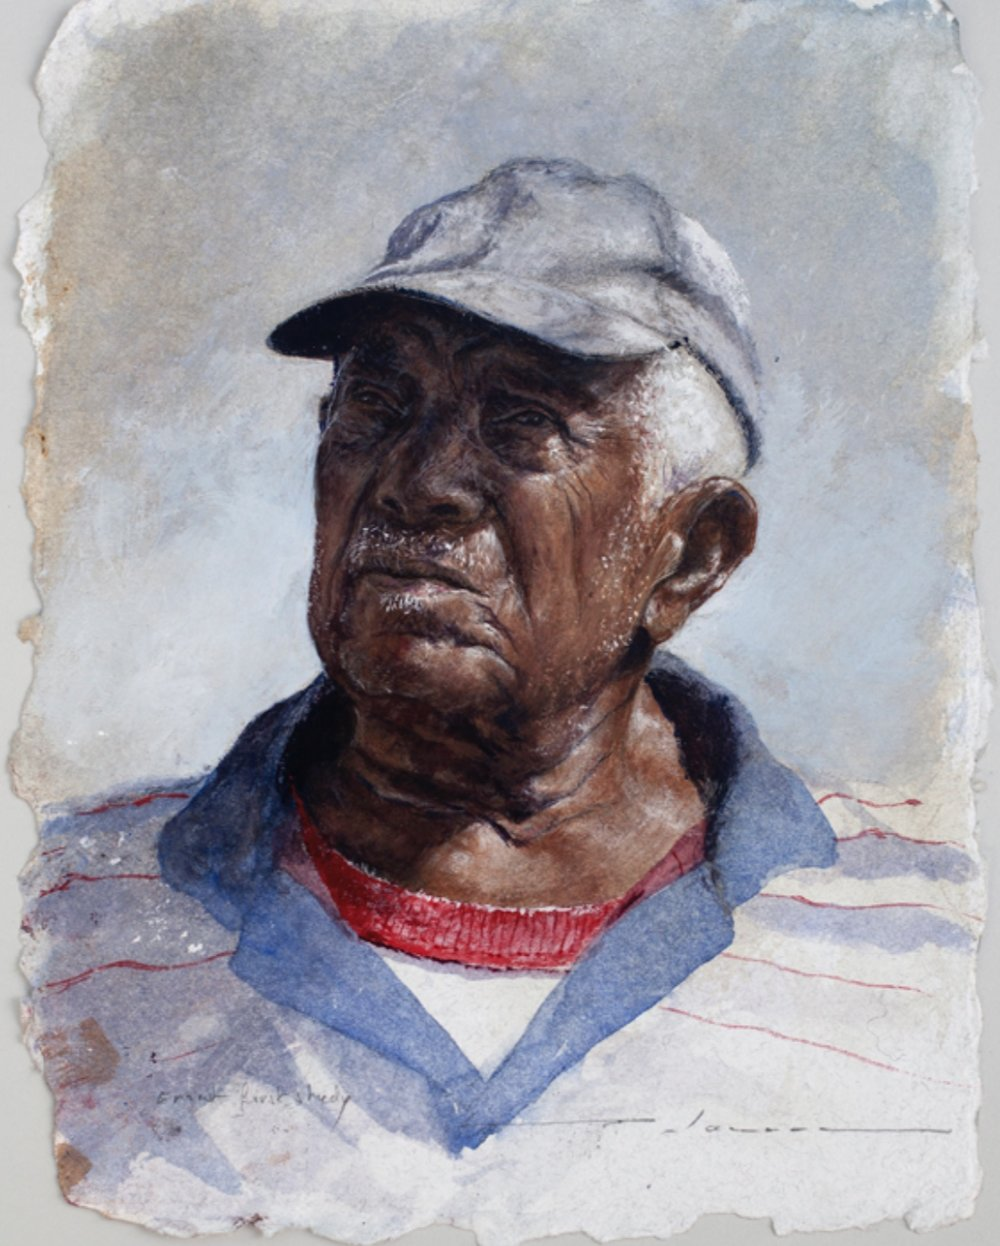 Ernest Culmer: First Study. Watercolour on paper